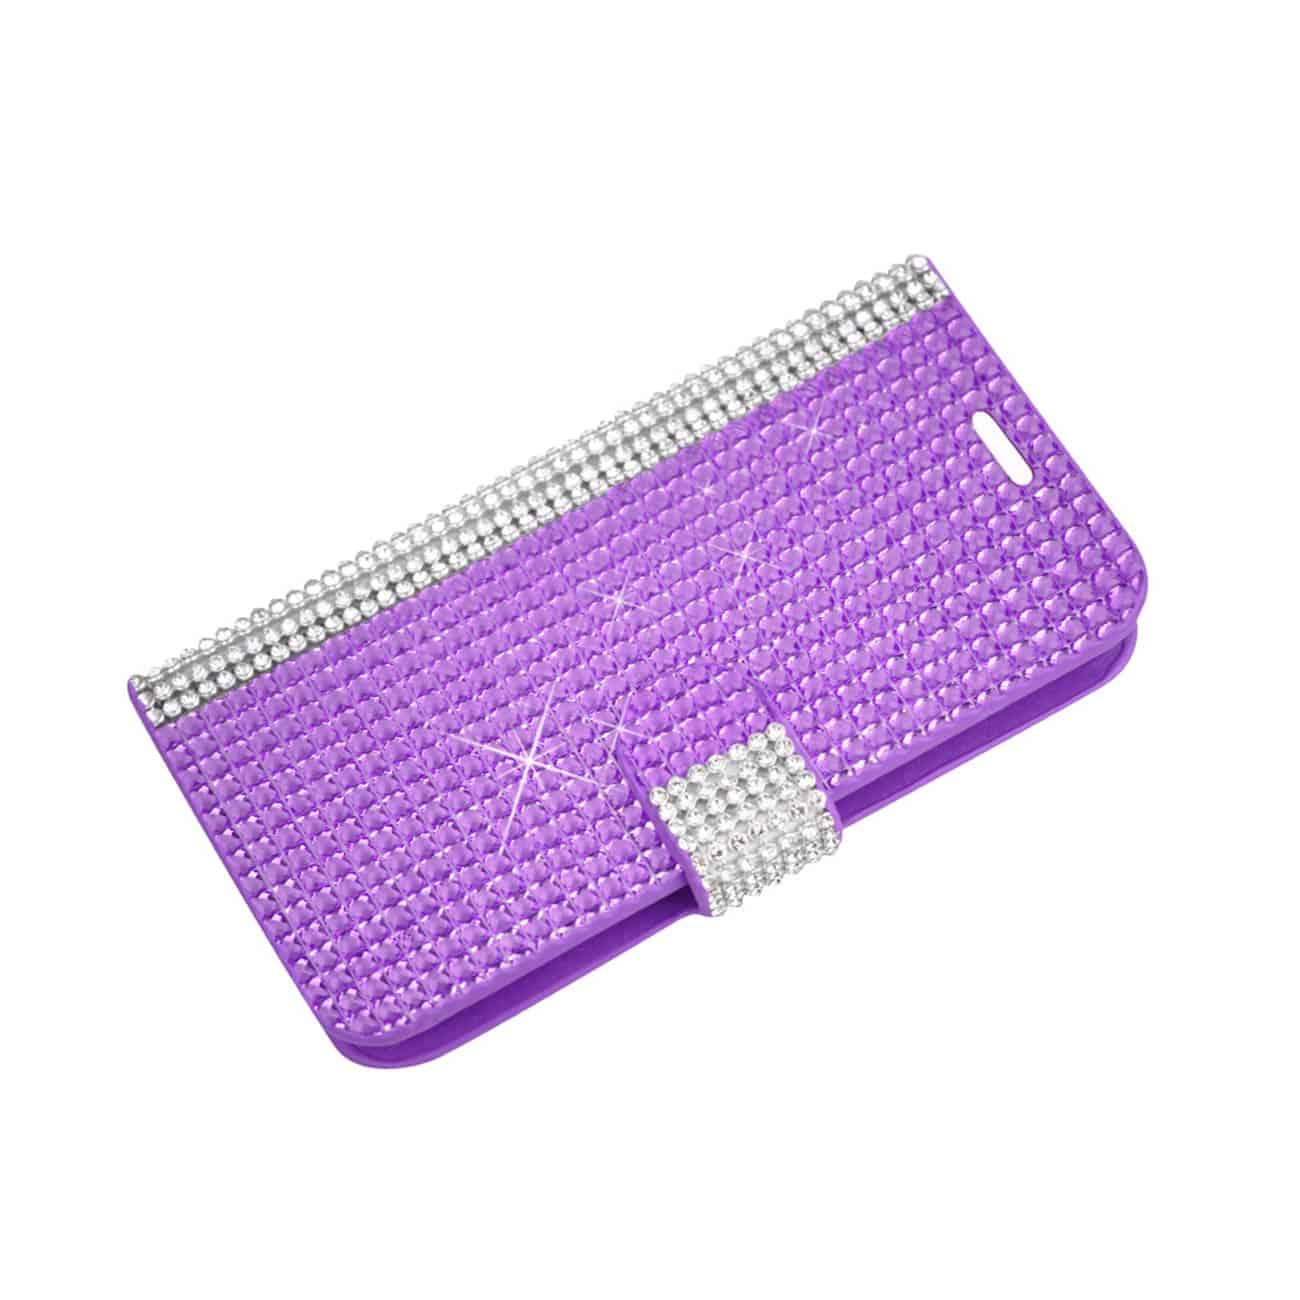 ZTE OVERTURE 2 JEWELRY DIAMOND RHINESTONE WALLET CASE IN PURPLE